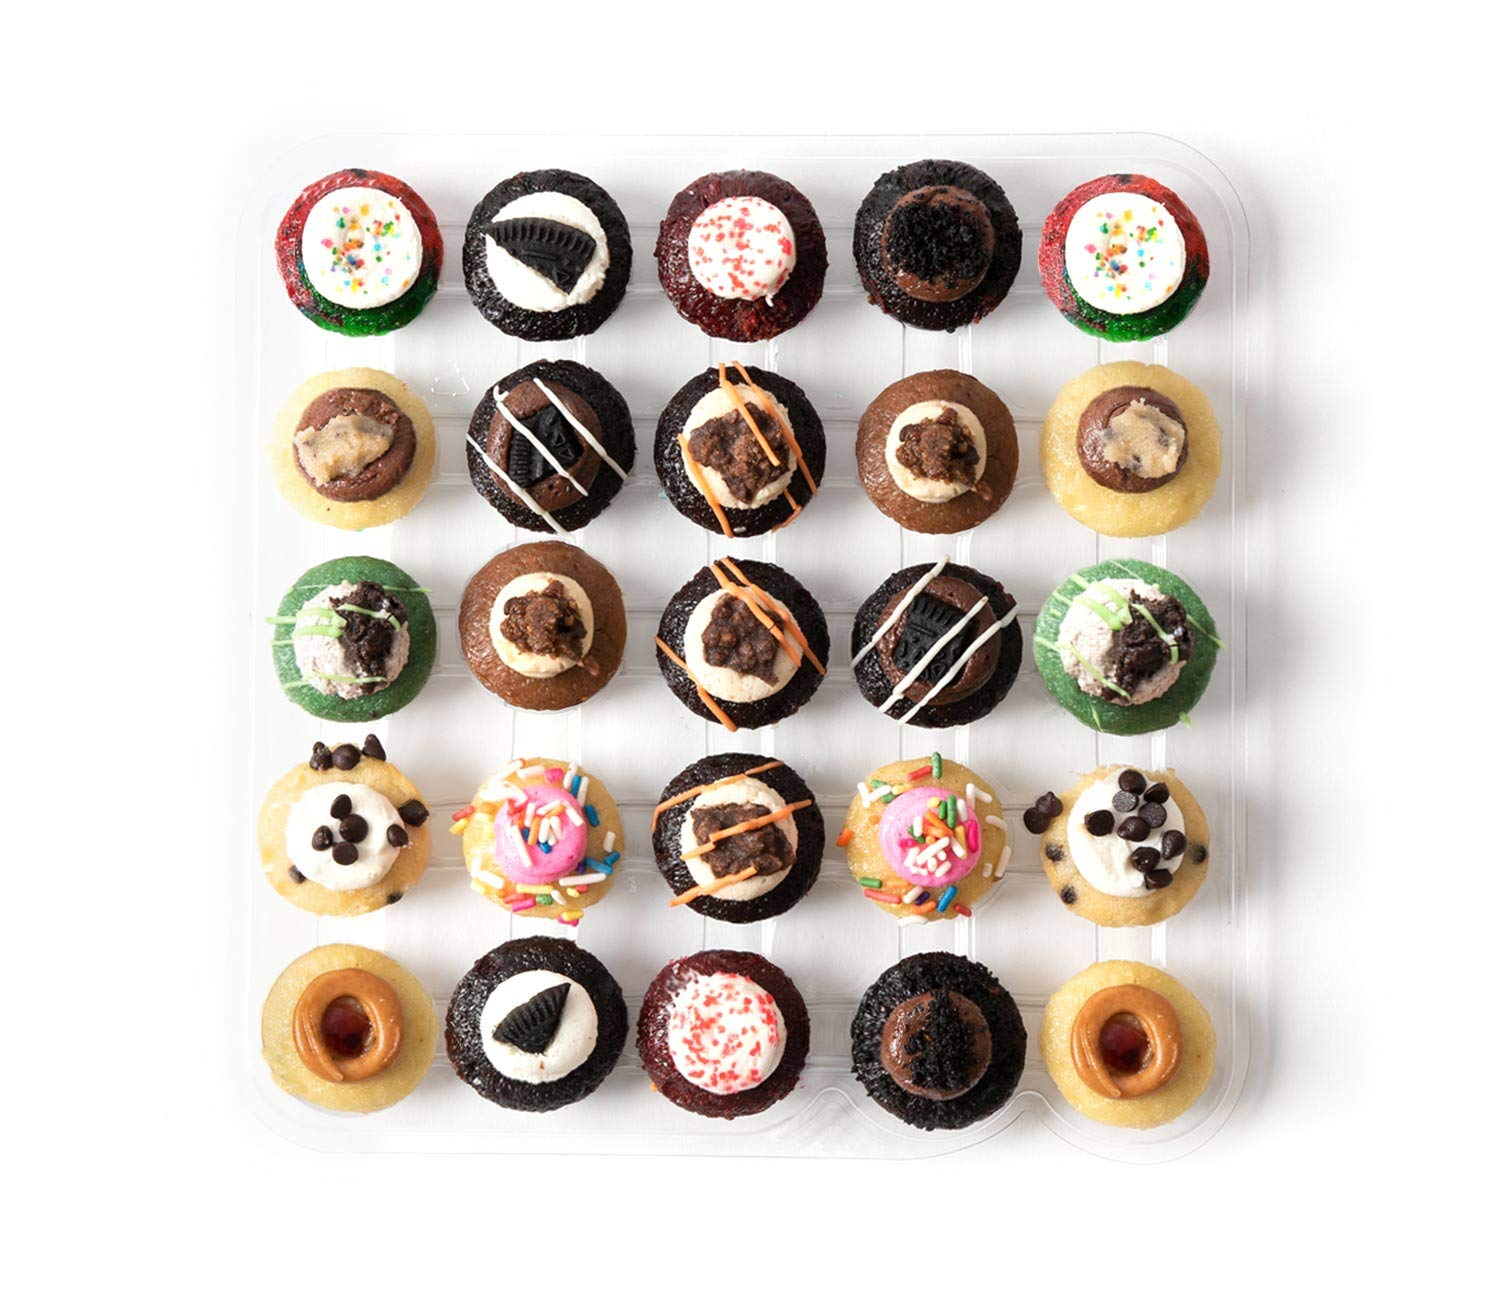 Baked by Melissa Cupcakes The Latest & Greatest - Assorted Bite-Size Cupcakes, 25 Count by Baked by Melissa